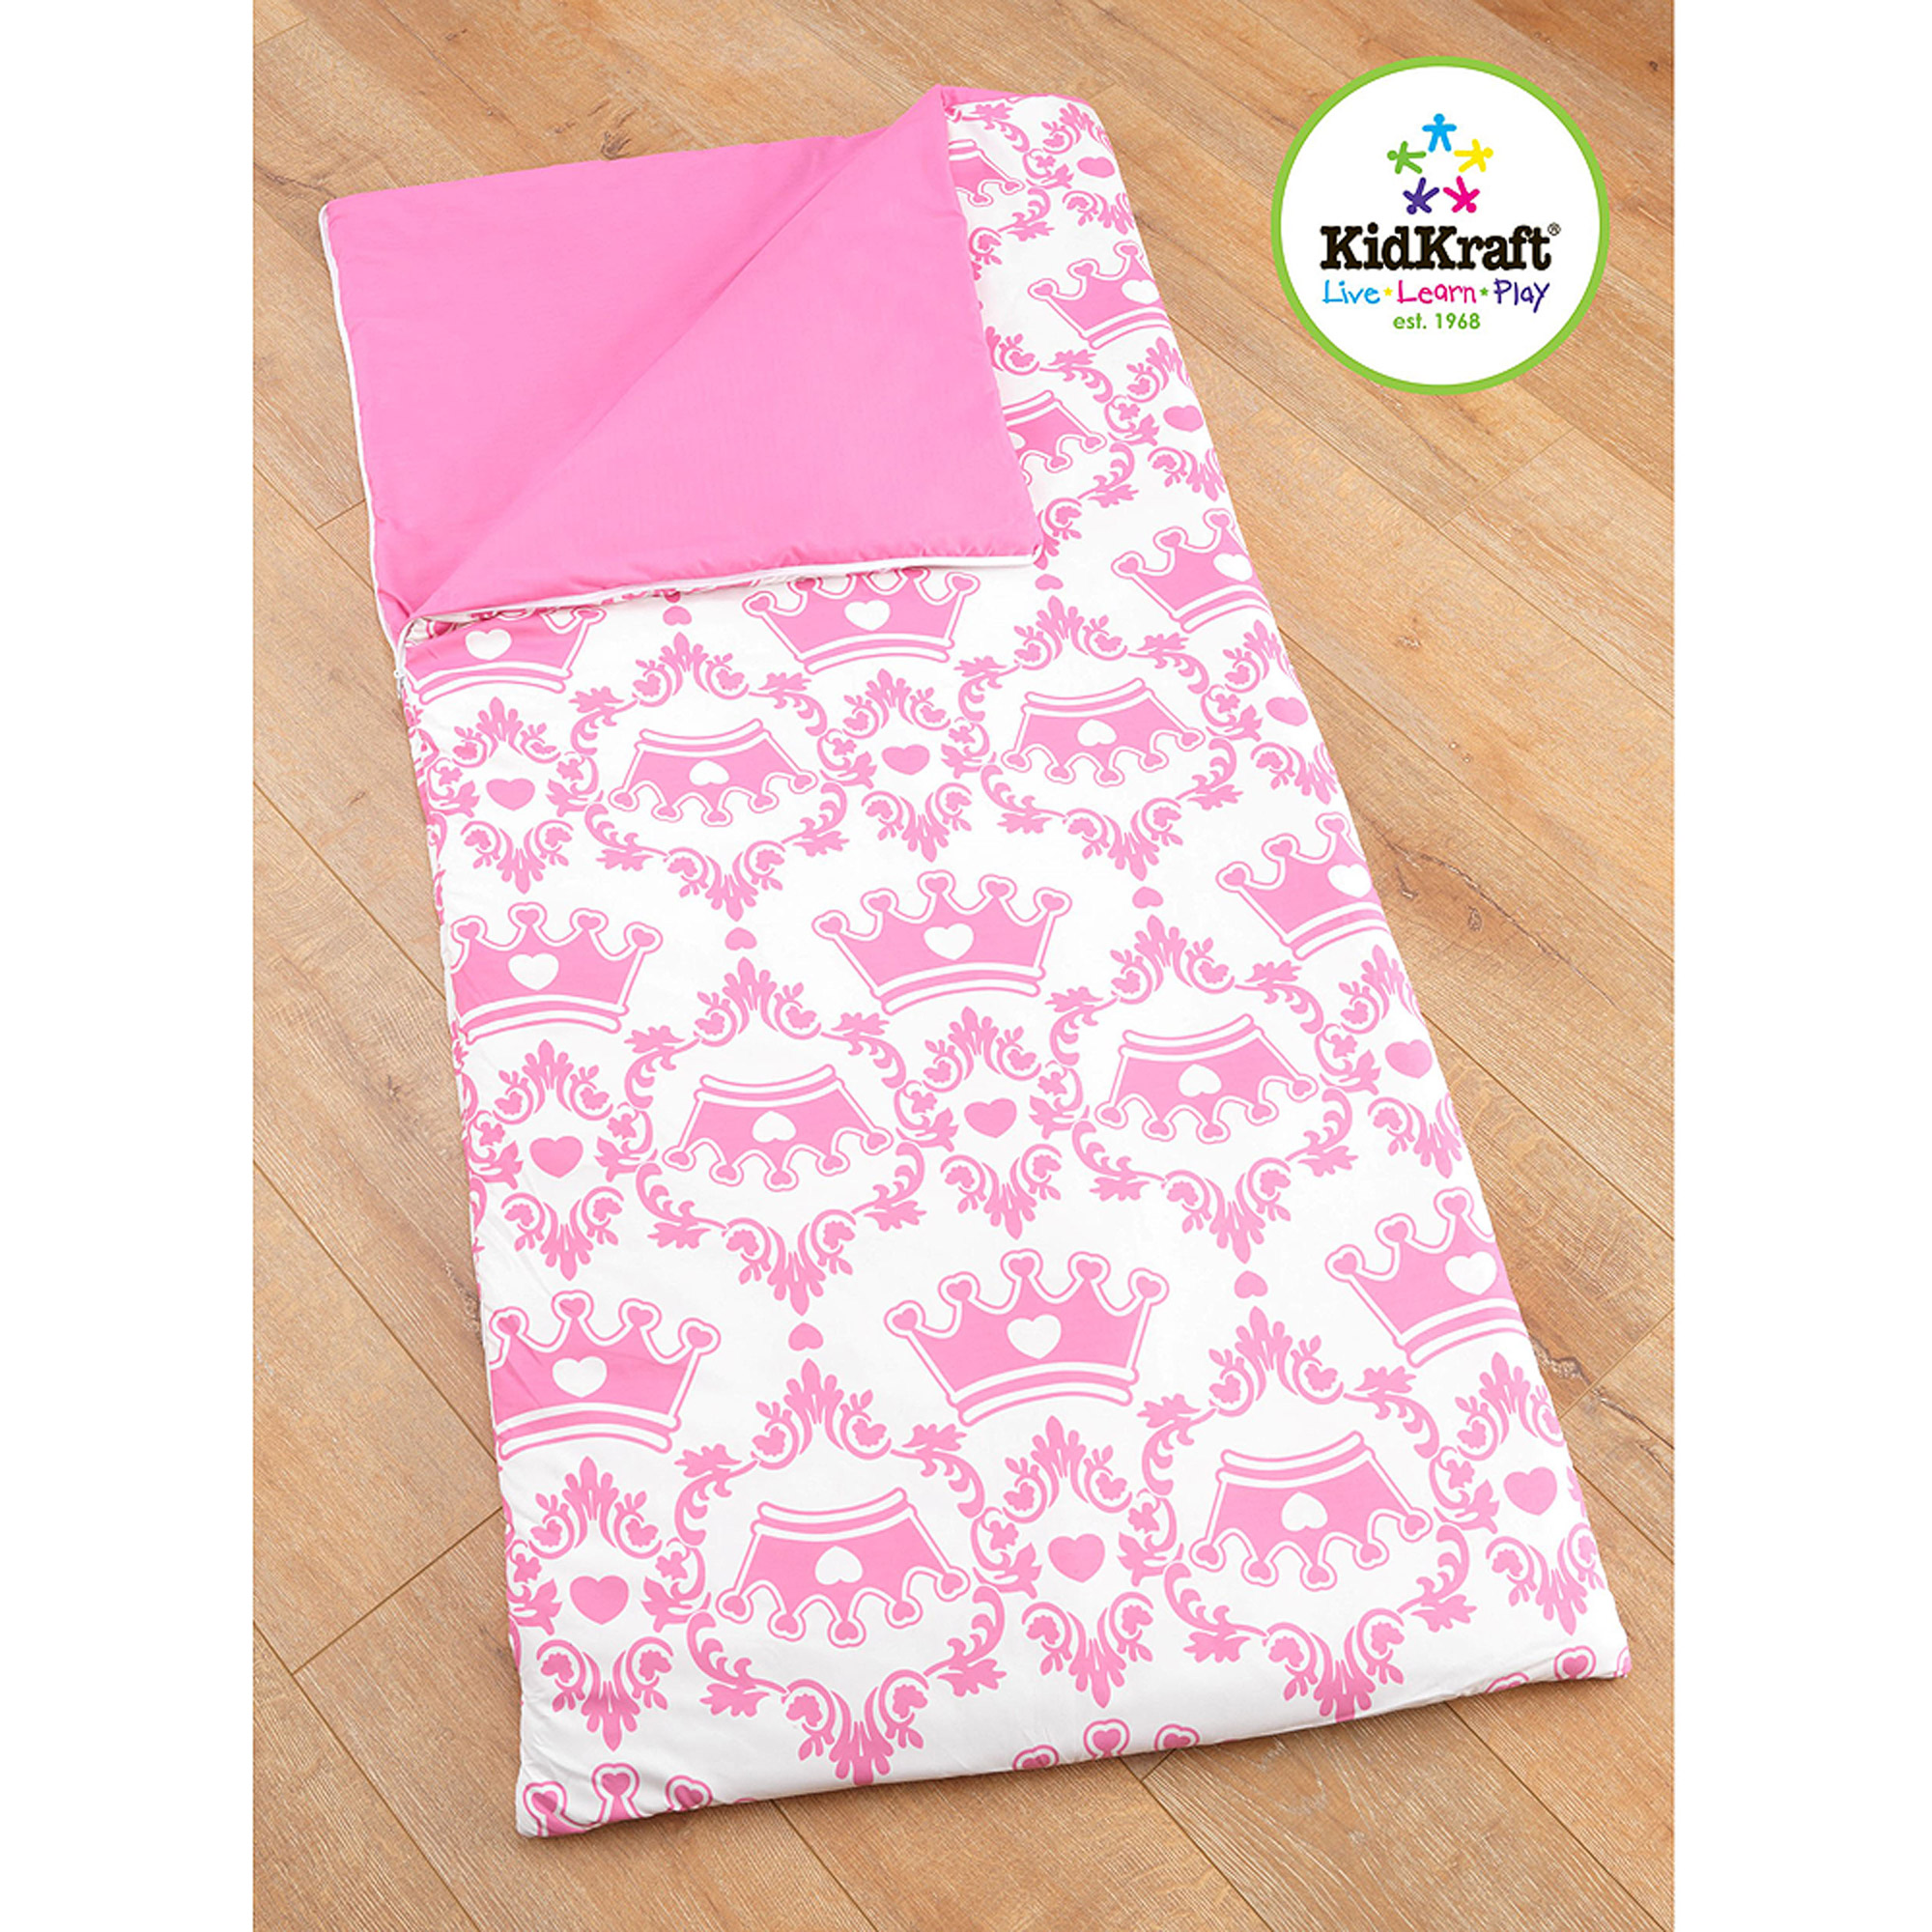 KidKraft Sleeping Bag - Princess